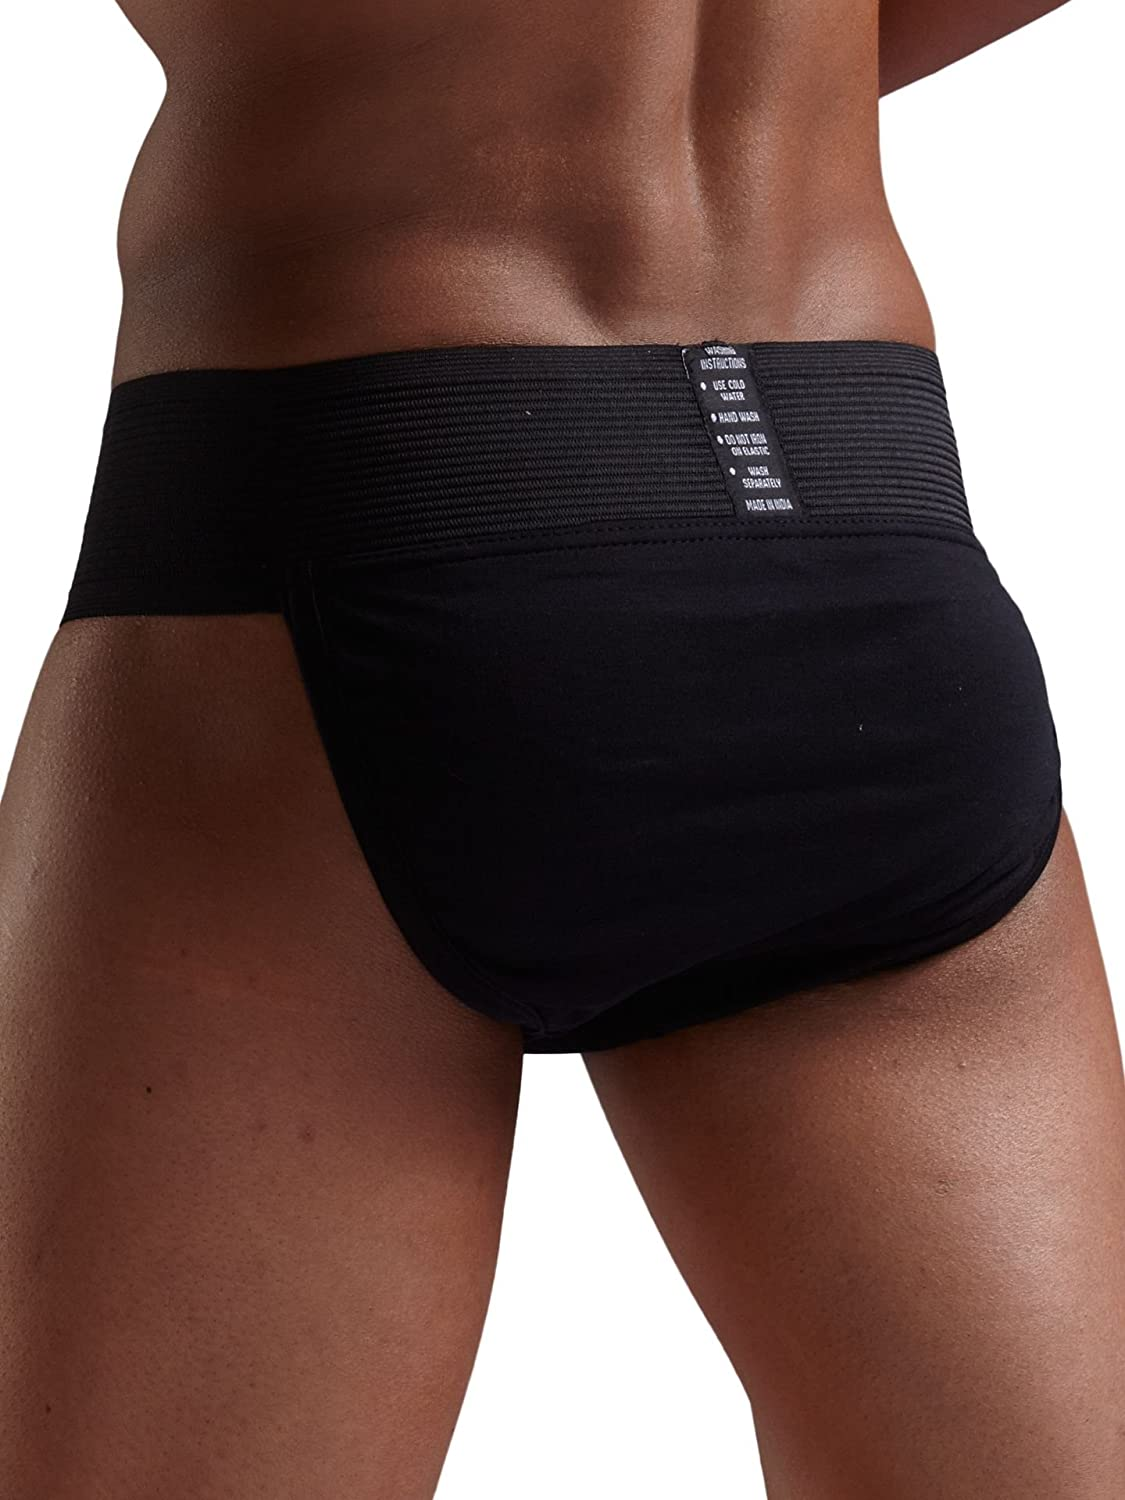 Omtex Tokyo Athletic Cotton Gym Supporter Back Covered with Cup Pocket for Mens